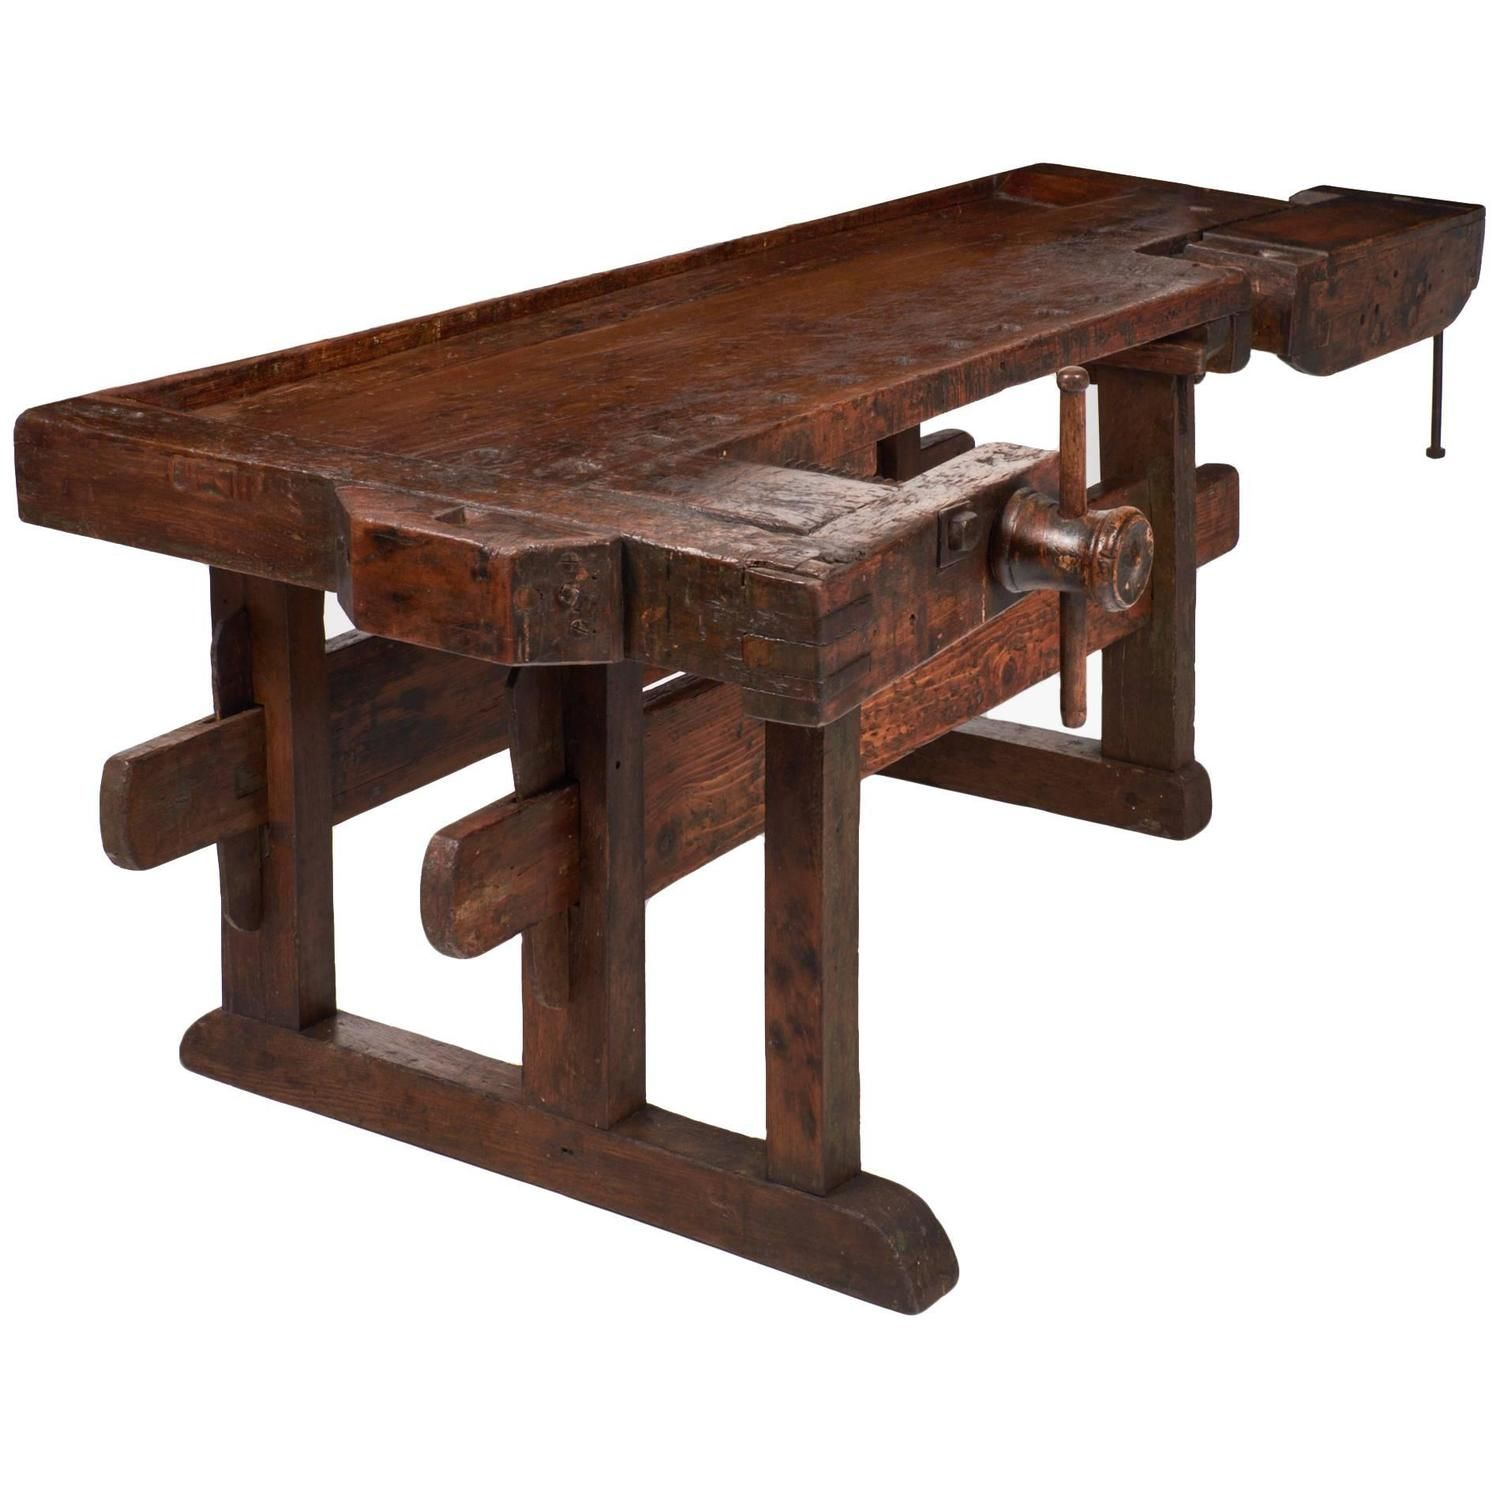 Colossal Antique Alpine Ski Craftsman's Workbench